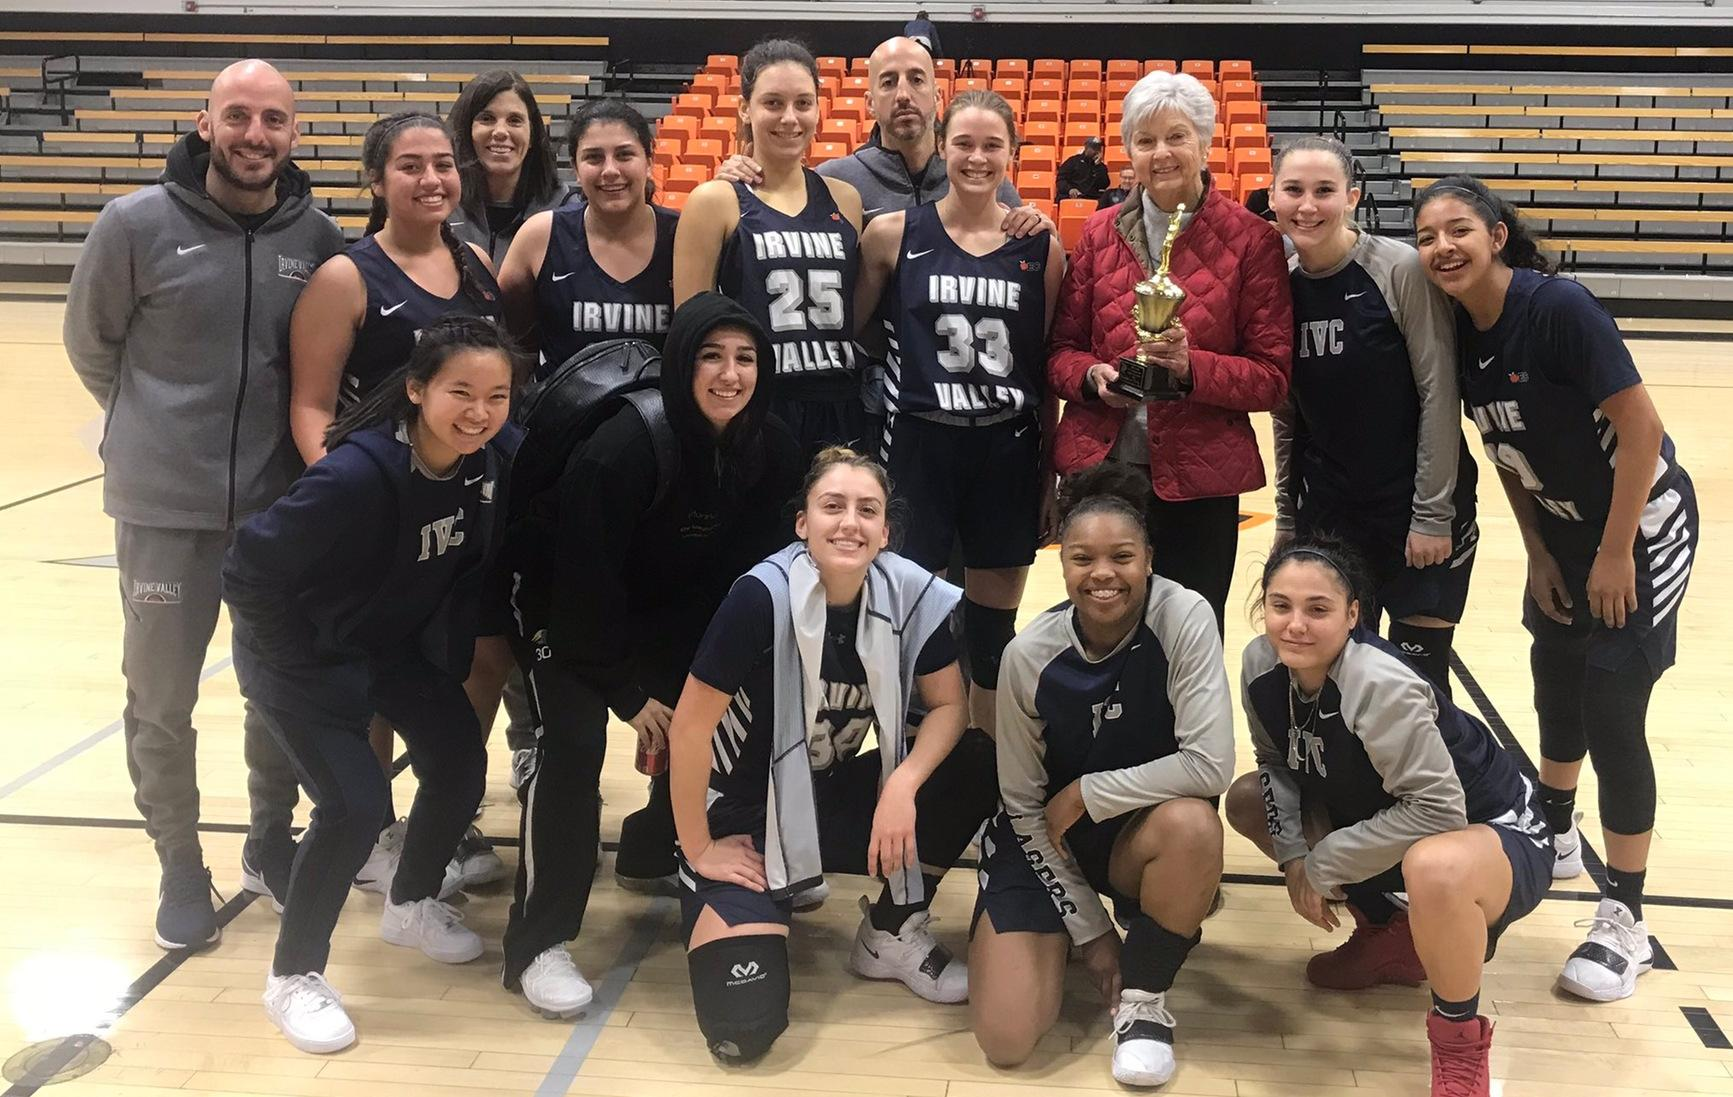 Women's basketball team takes consolation title at Ventura